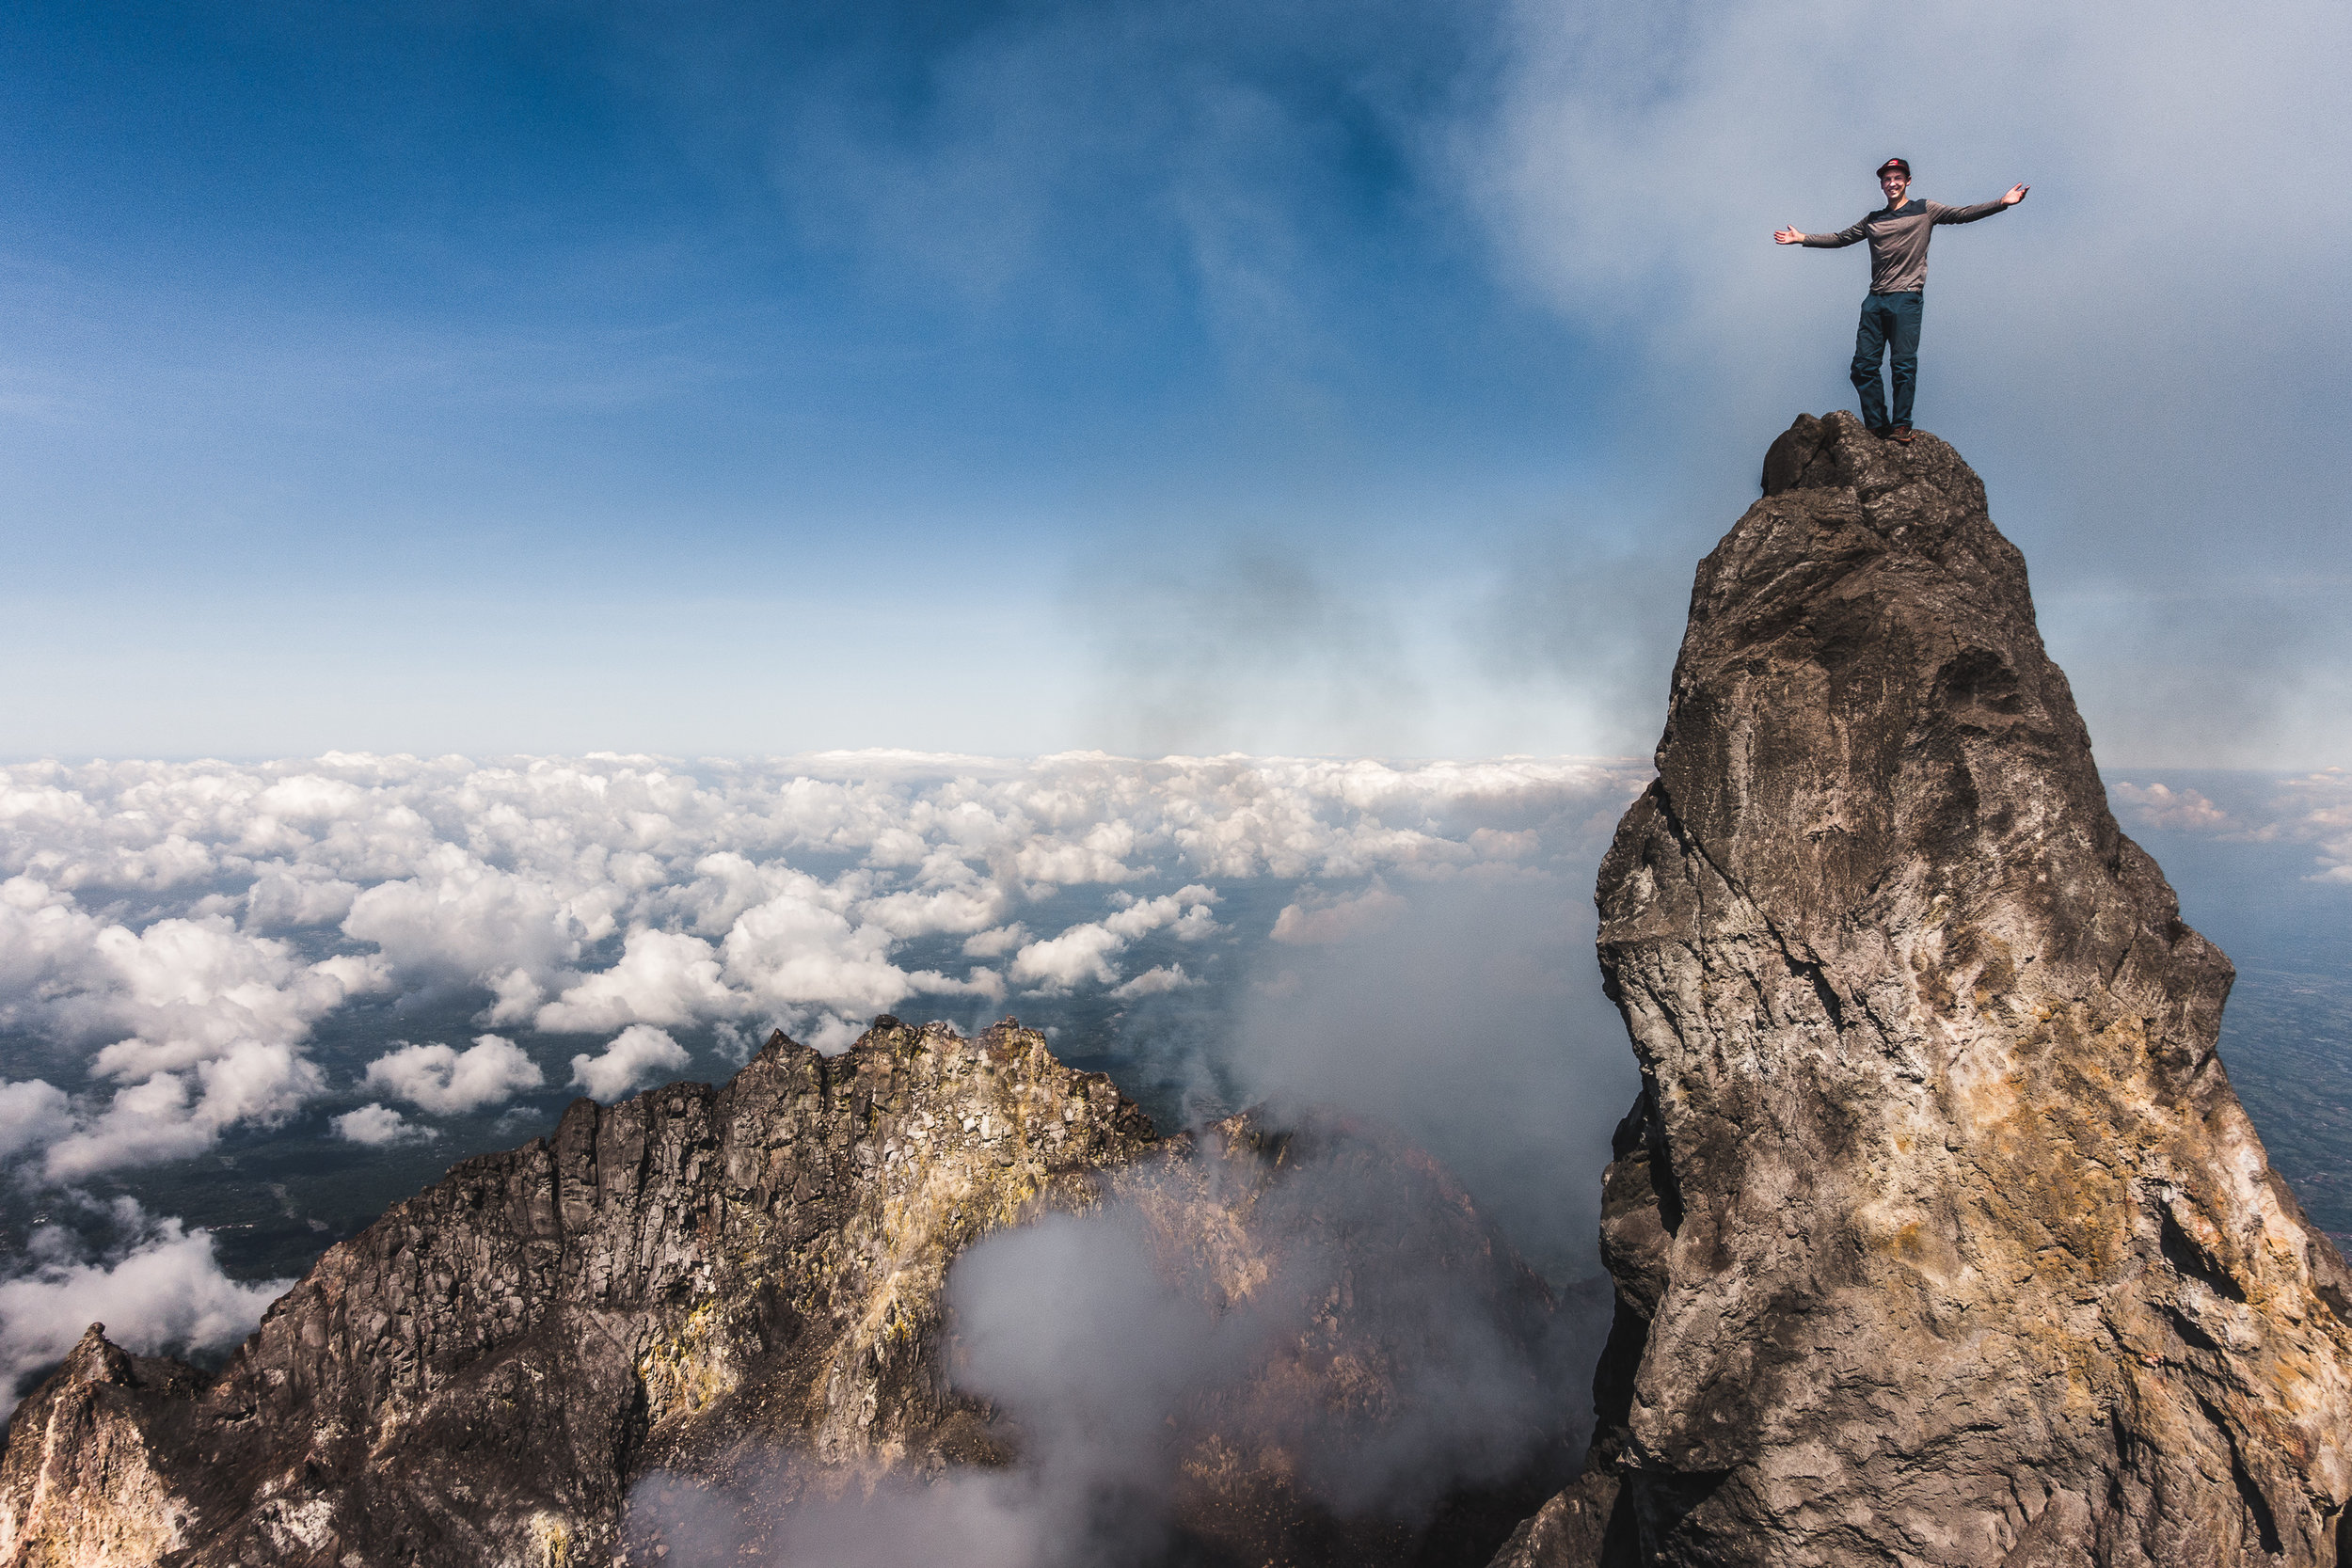 True Summit of Volcano Merapi, Java, Indonesia